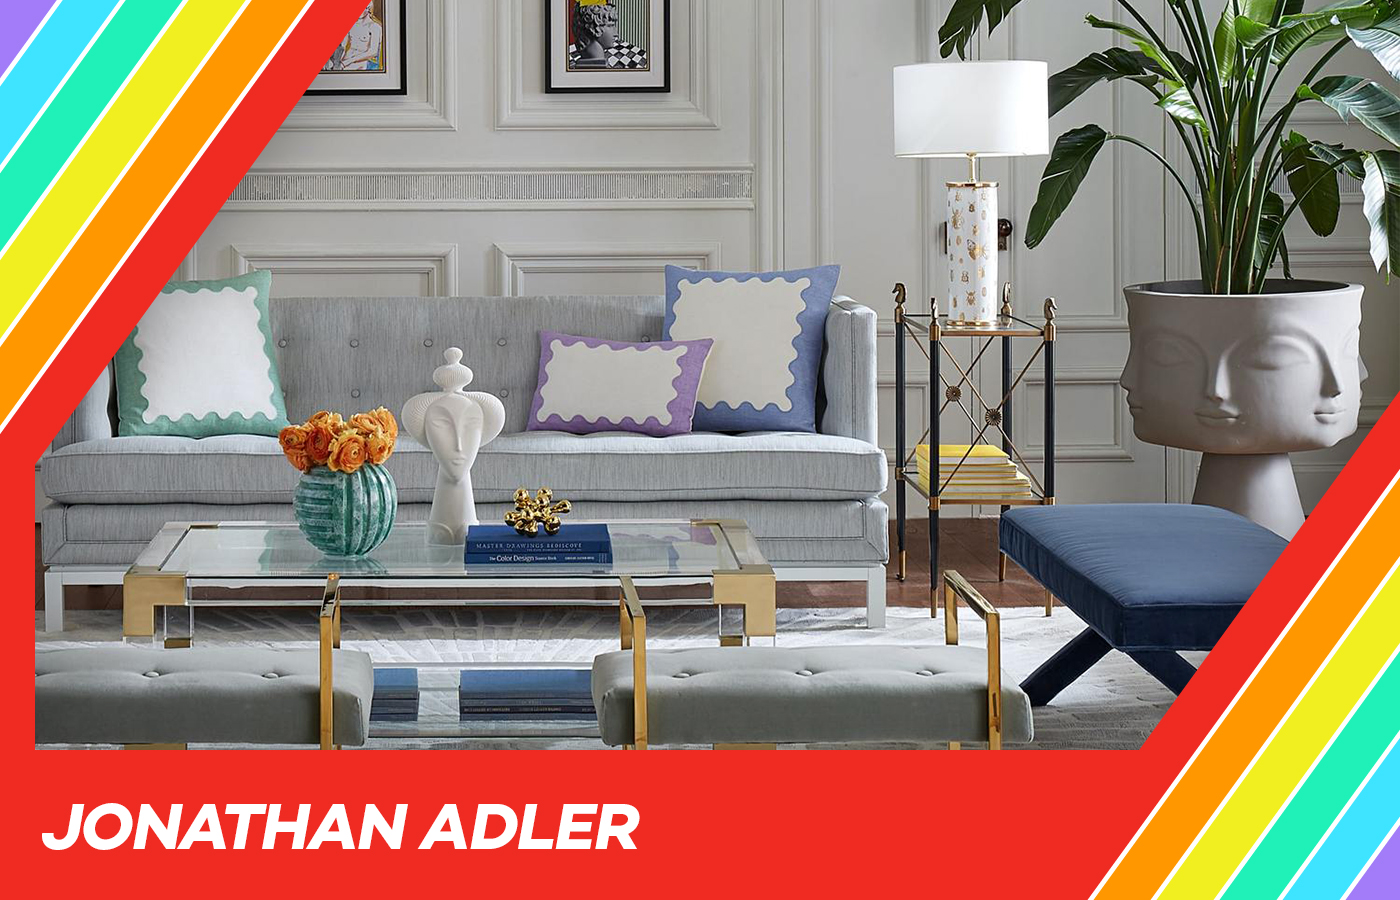 Jonathan Adler's whimsical home decor will instantly make any space feel more special